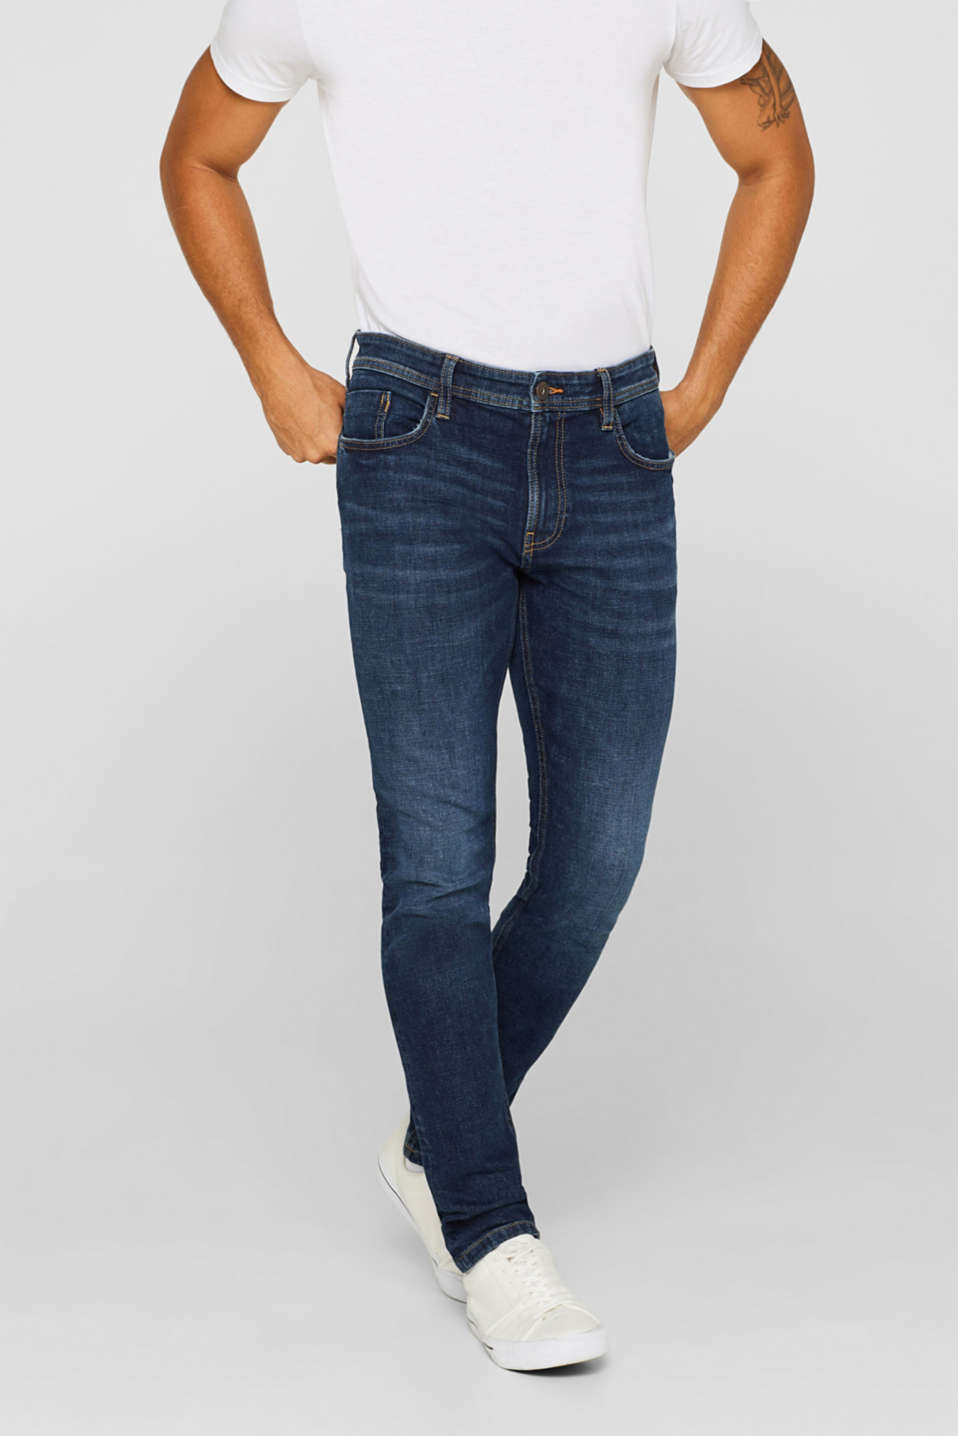 edc - Stretchjeans i smal modell